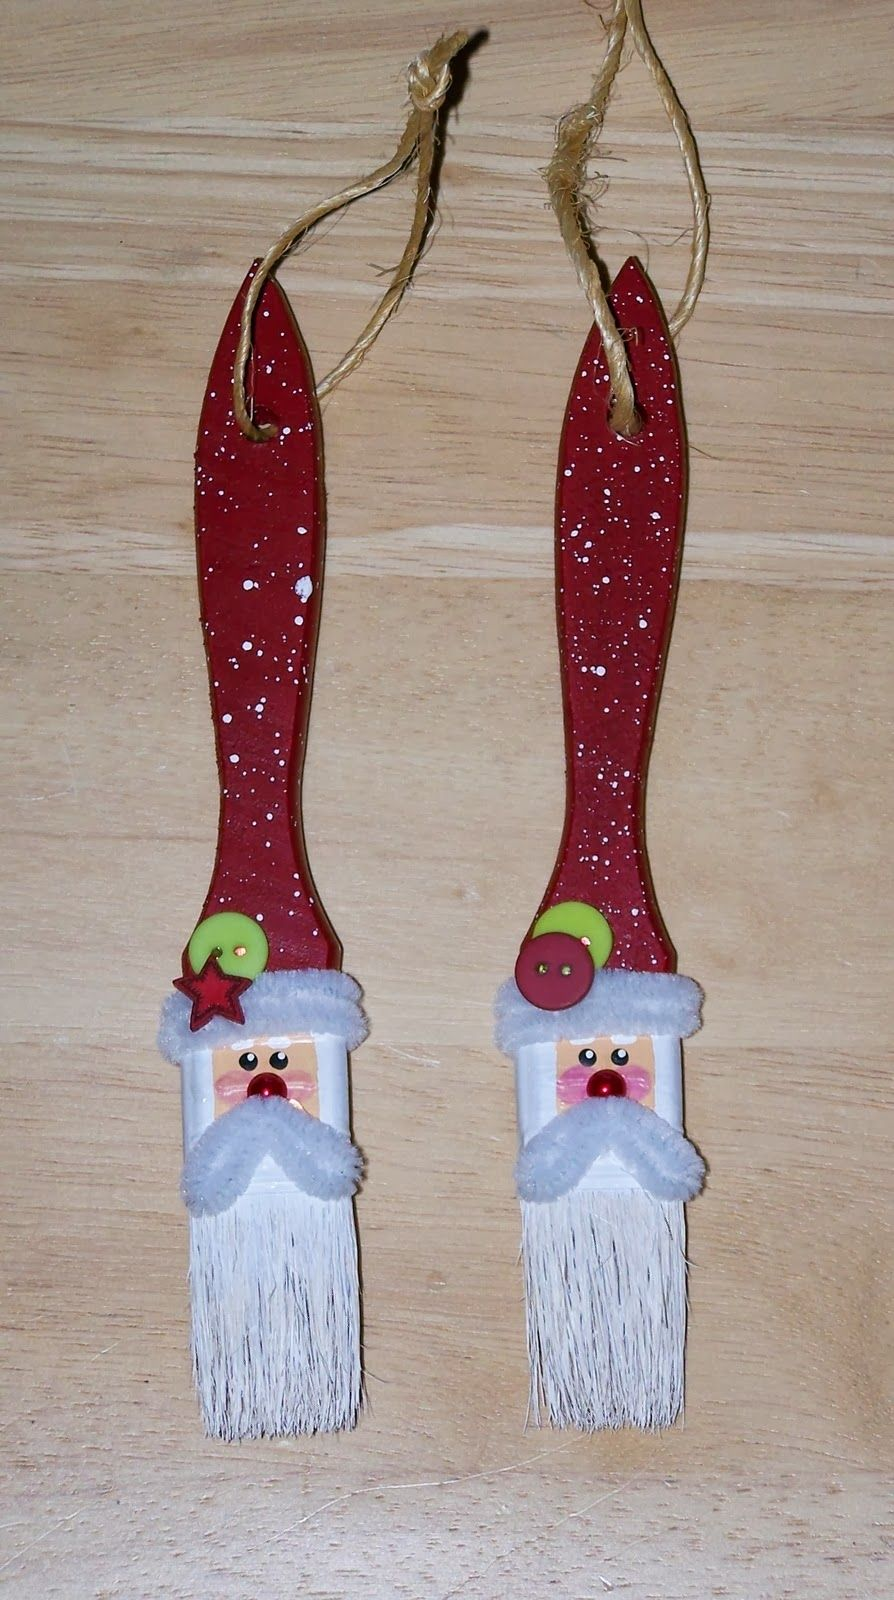 Pinterest Christmas Crafts.Pinterest Christmas Crafts To Sell Google Search More